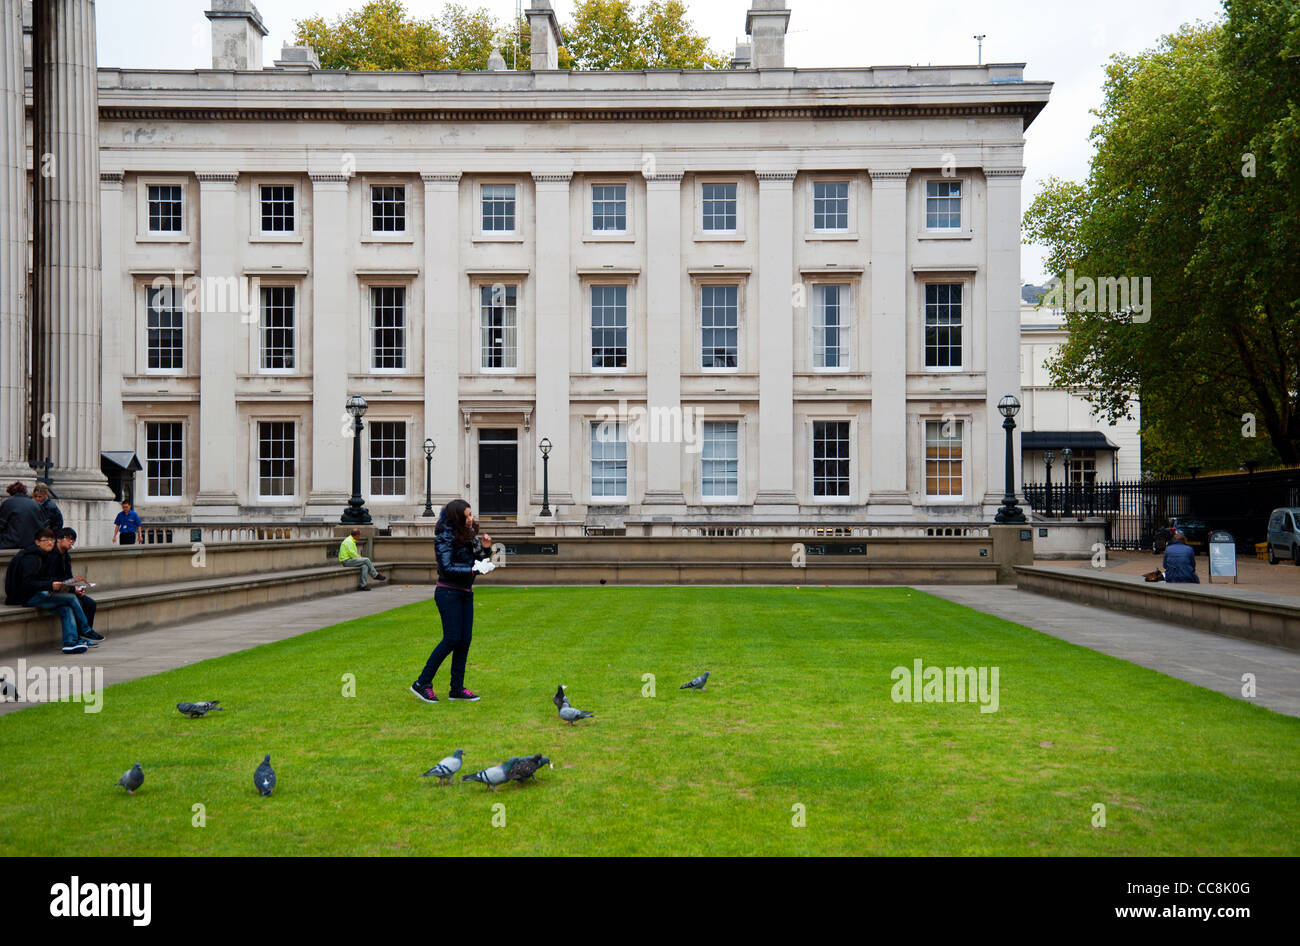 Feeding pigeons on the lawn outside the British Museum, London, UK - Stock Image